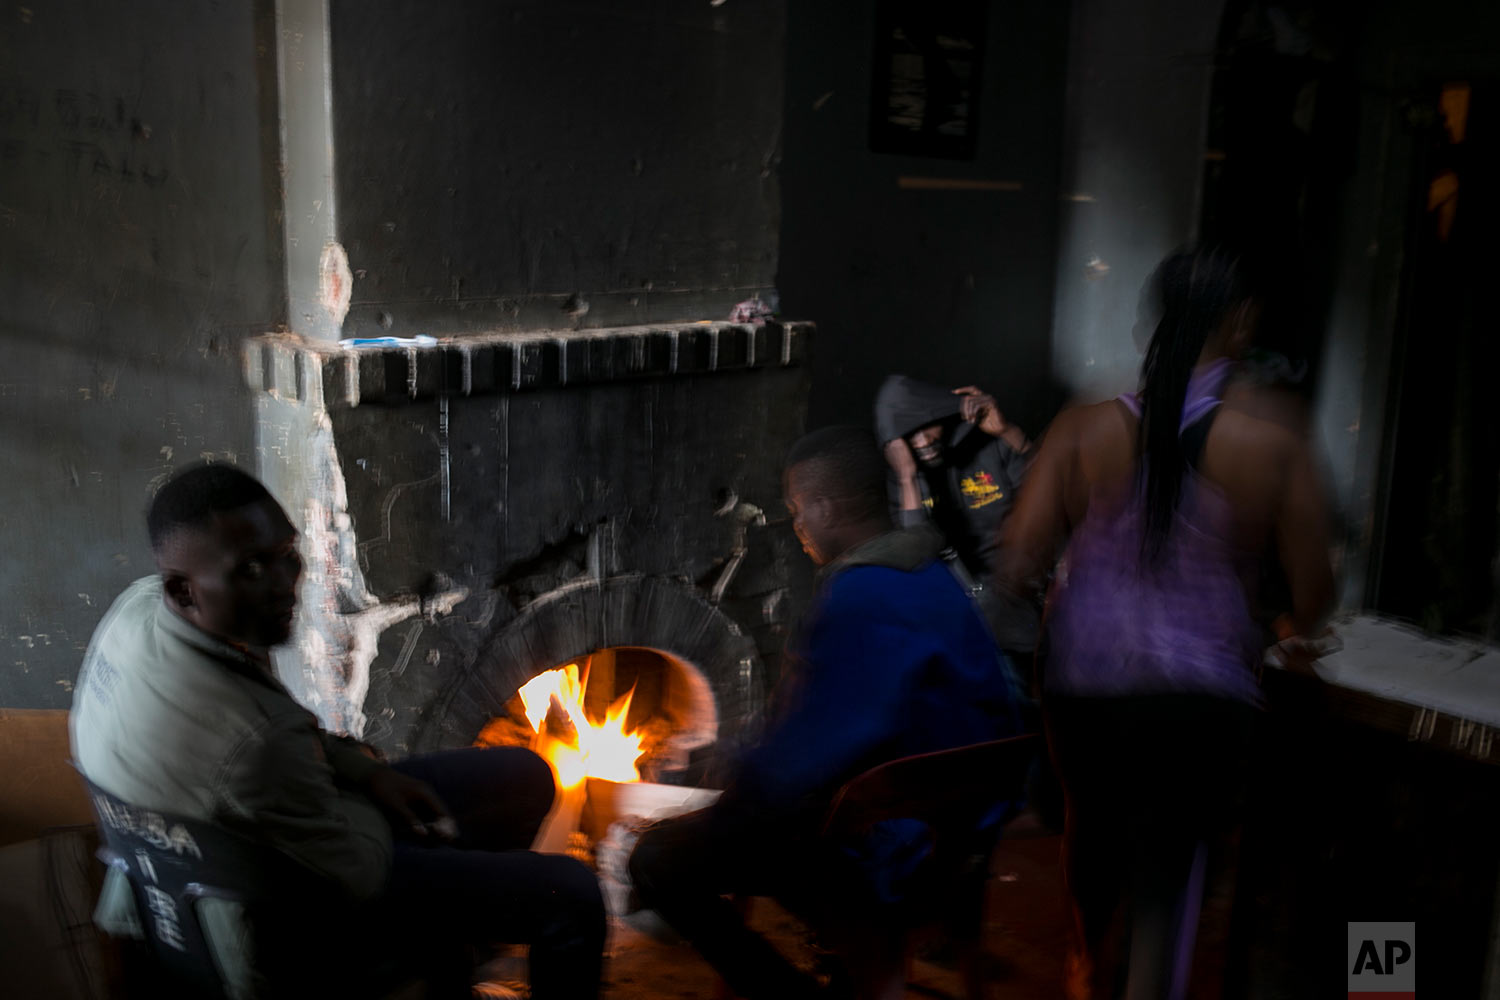 People warm themselves by a fire place in an abandoned building. (AP Photo/Bram Janssen)